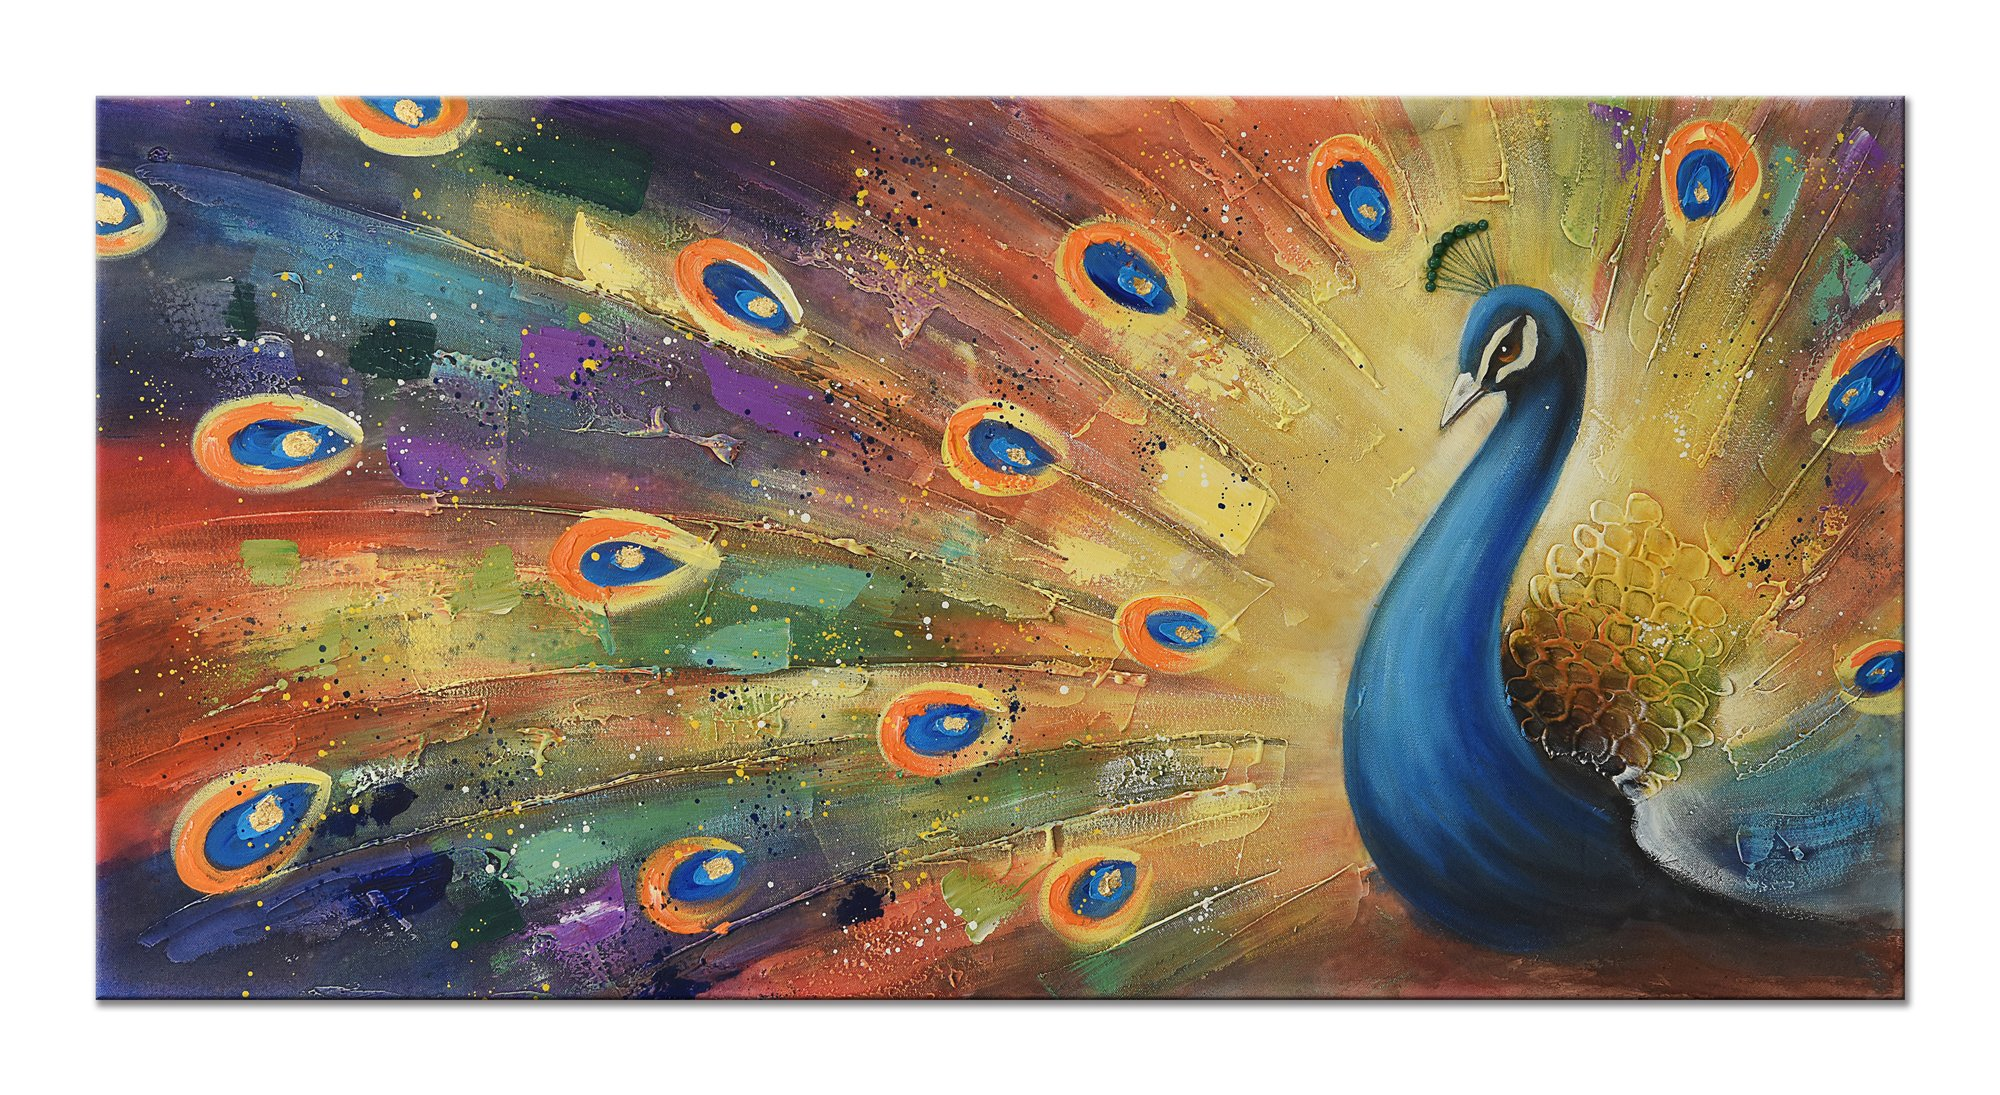 UAC WALL ARTS 100% Hand-Painted 3D Painting on Canvas Colorful Peacock Oil Painting Modern Animal Home Sitting Room Decor Canvas Wall Art Ready to Hang